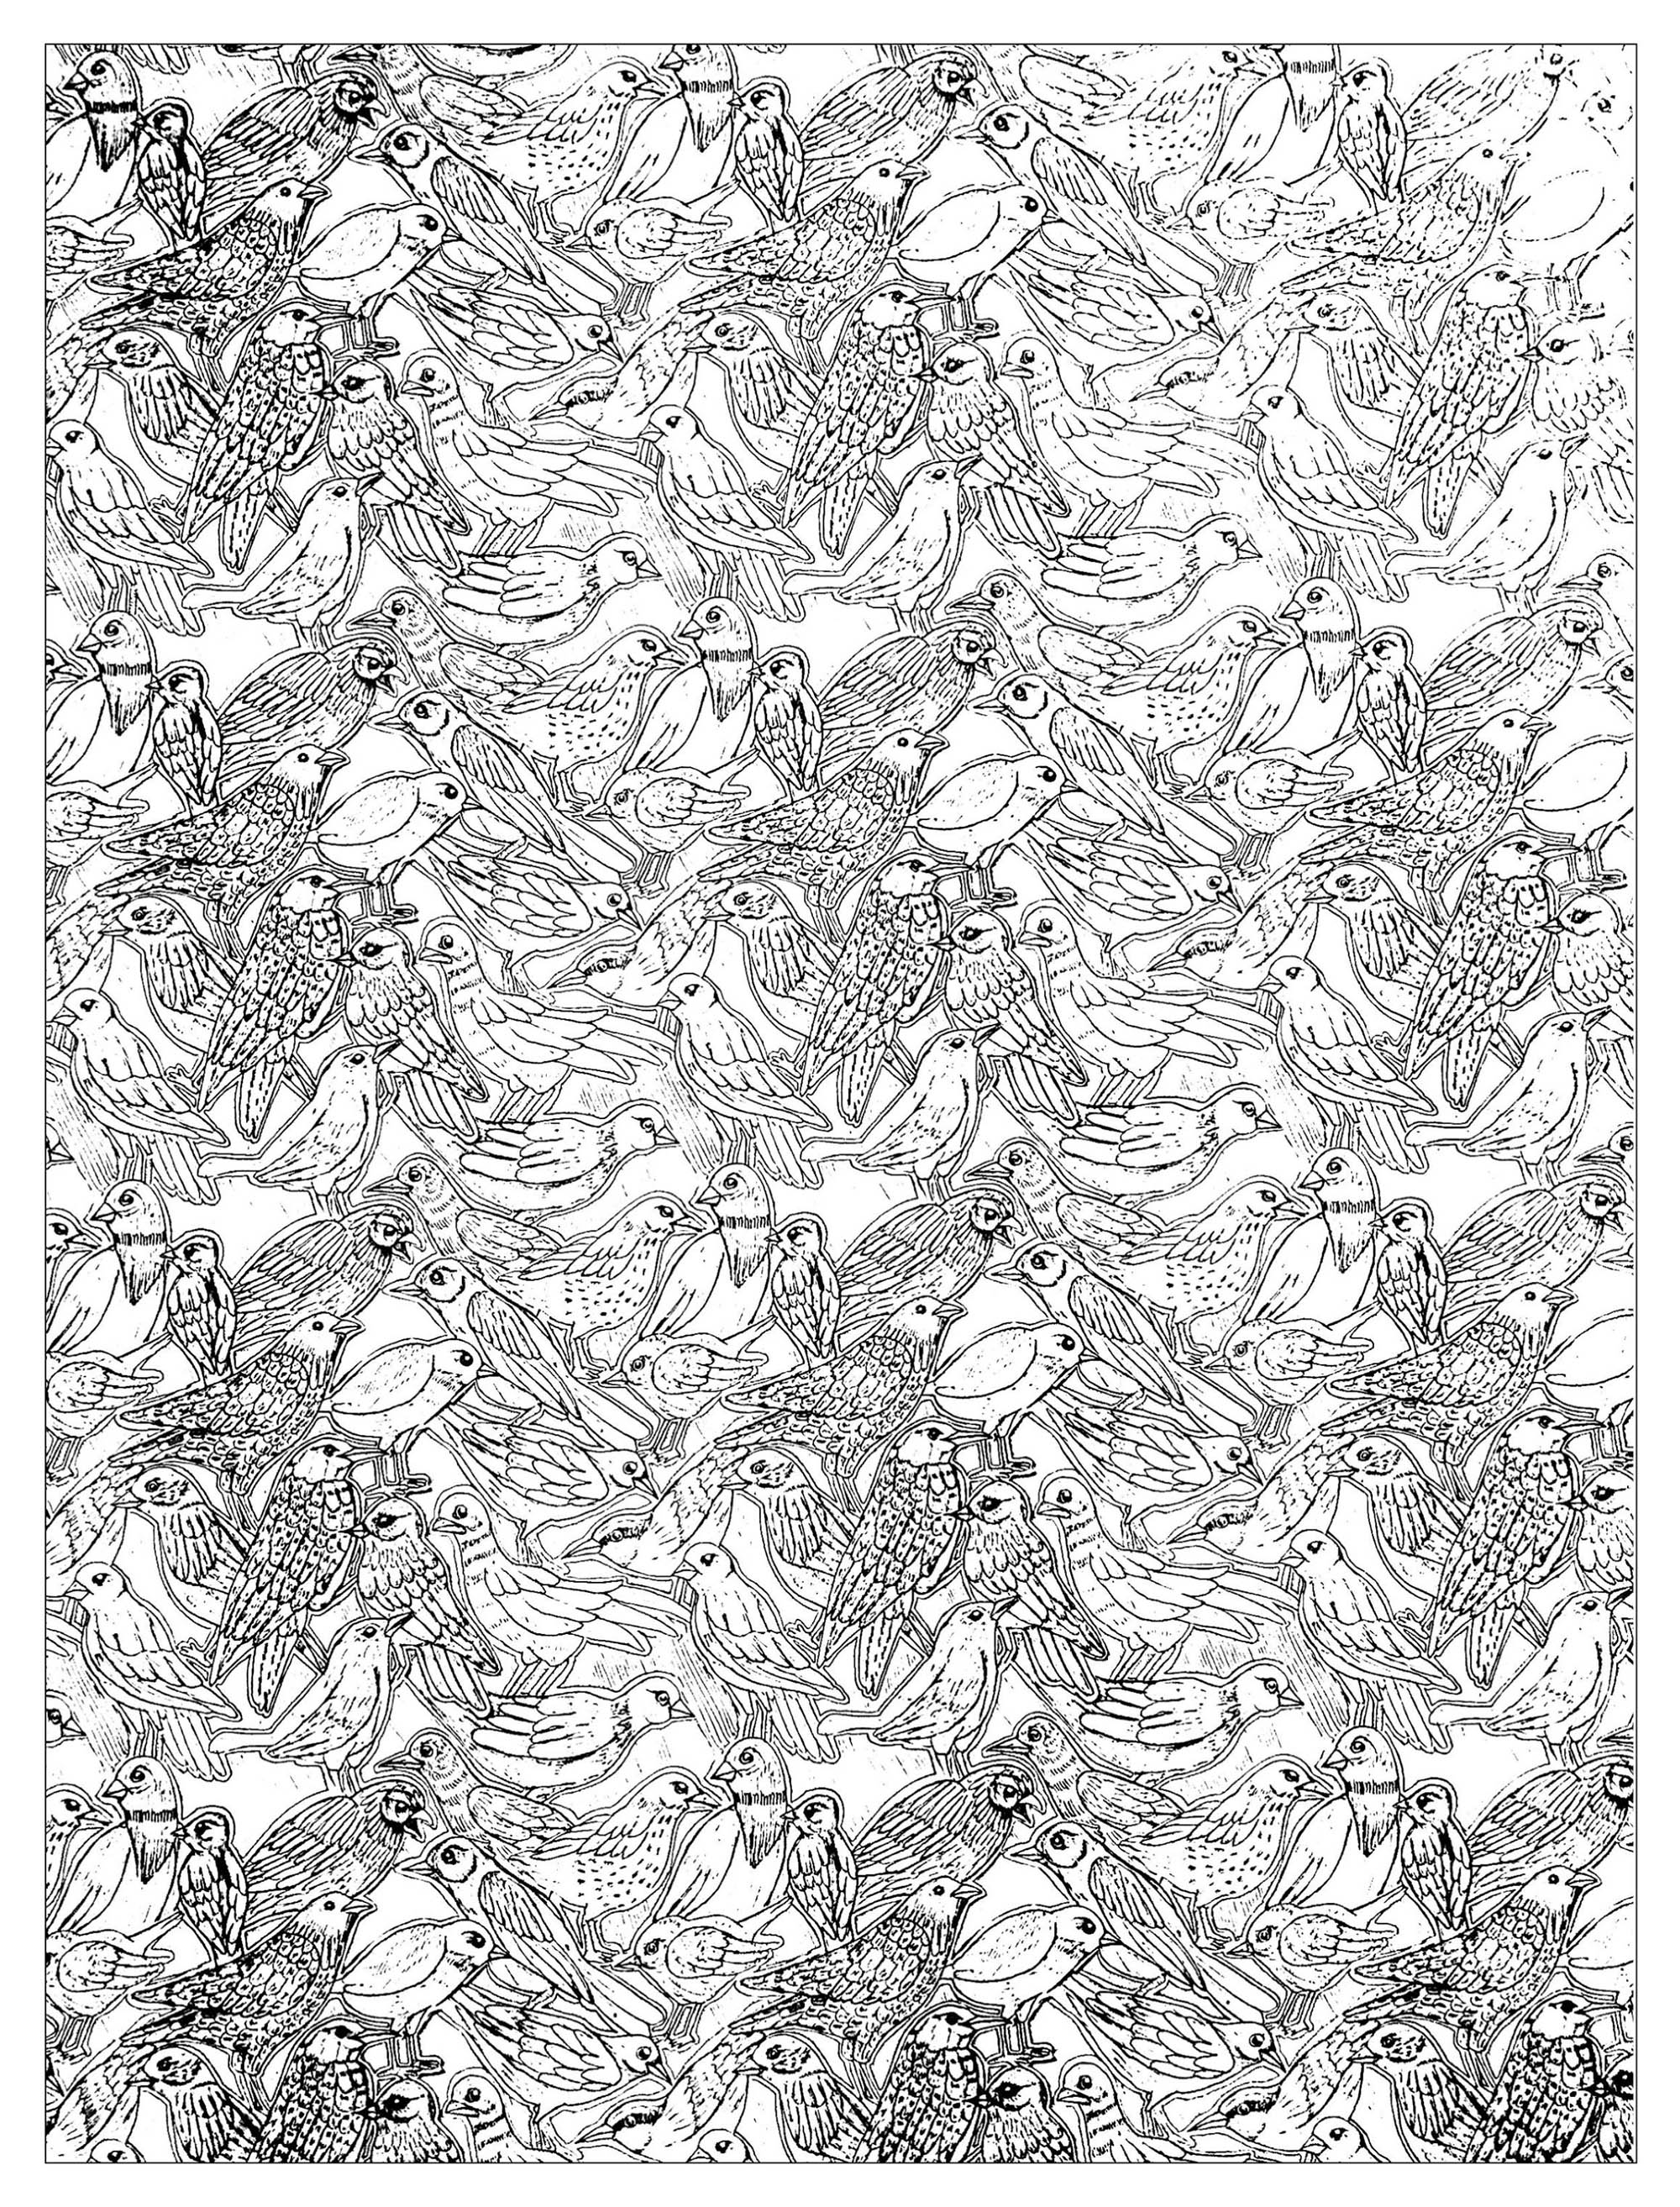 Drawing full of birds to print and color